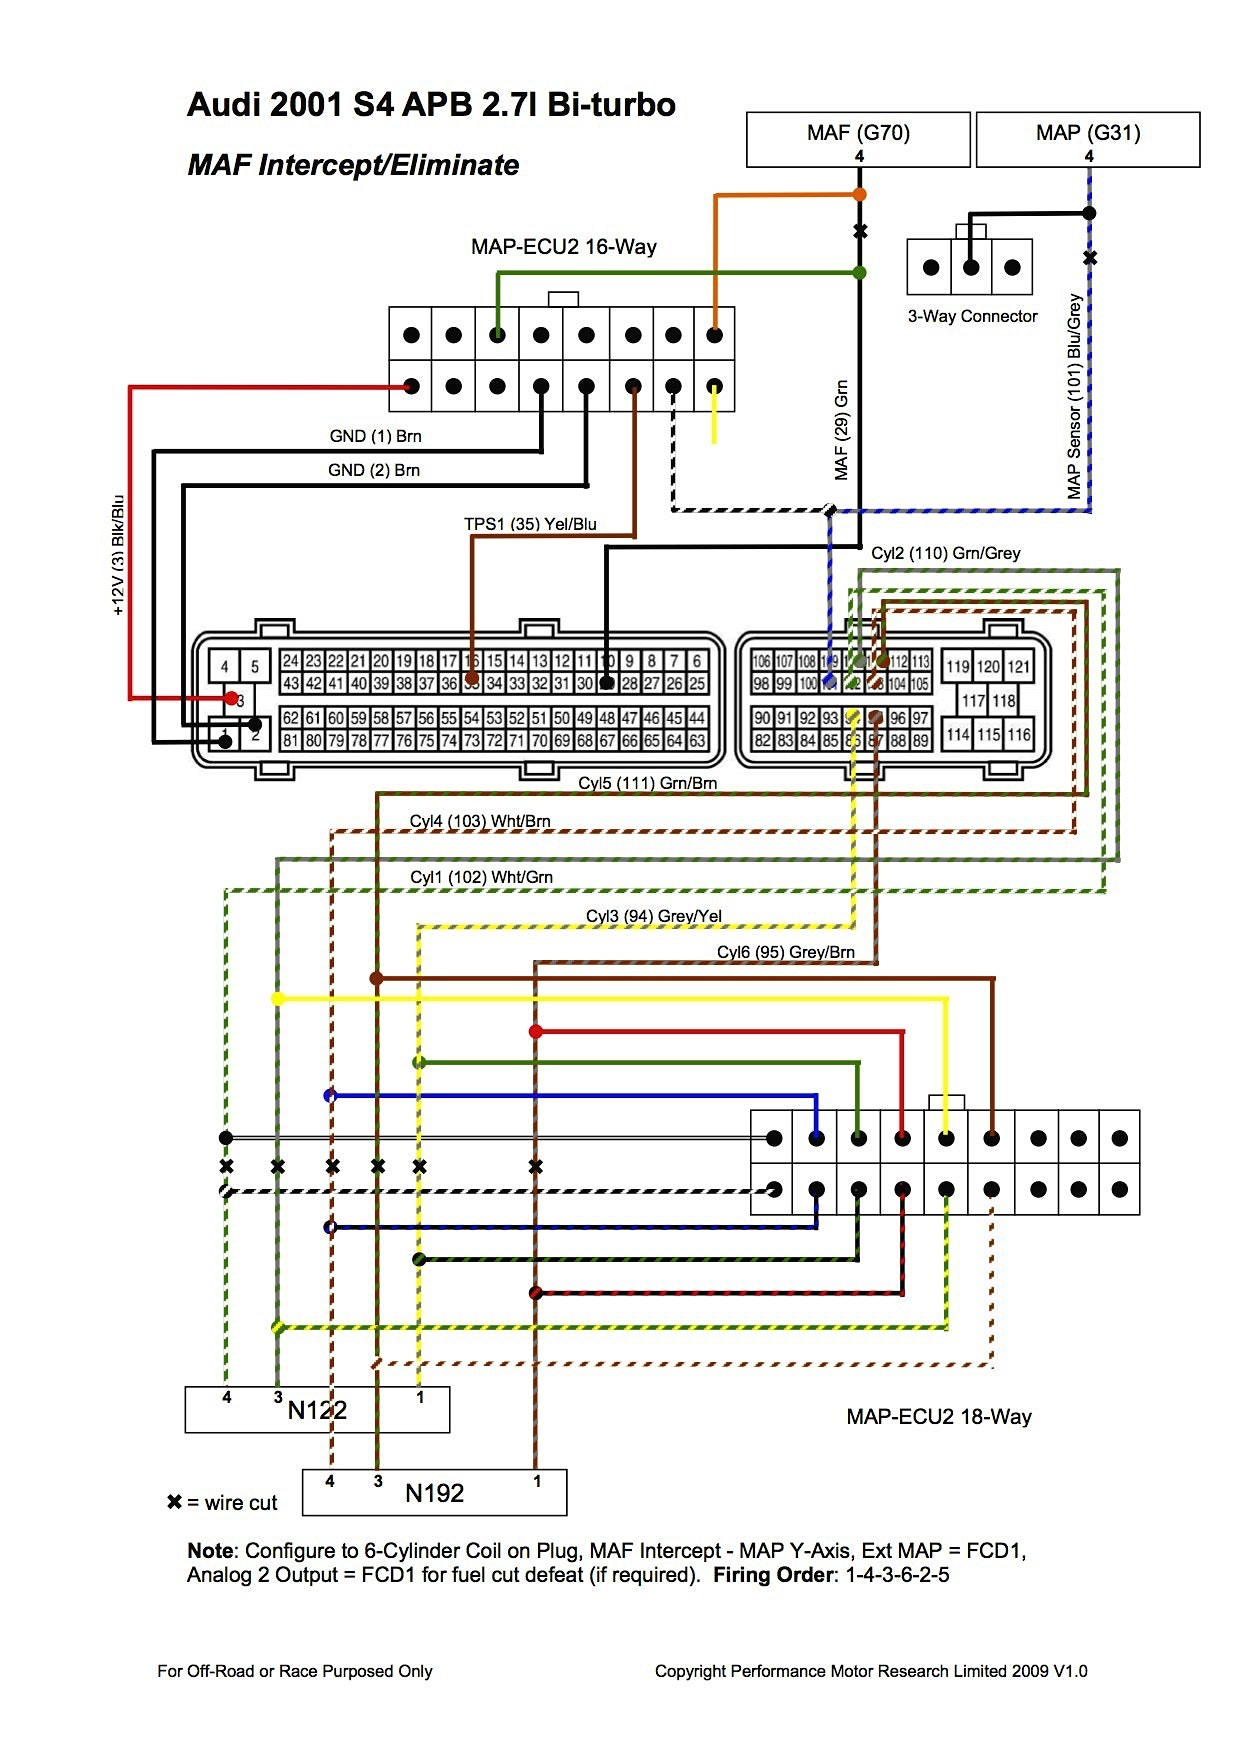 volkswagen wiring diagram 2005 data diagram schematic 2005 vw jetta wire diagram volkswagen wiring diagram 2005